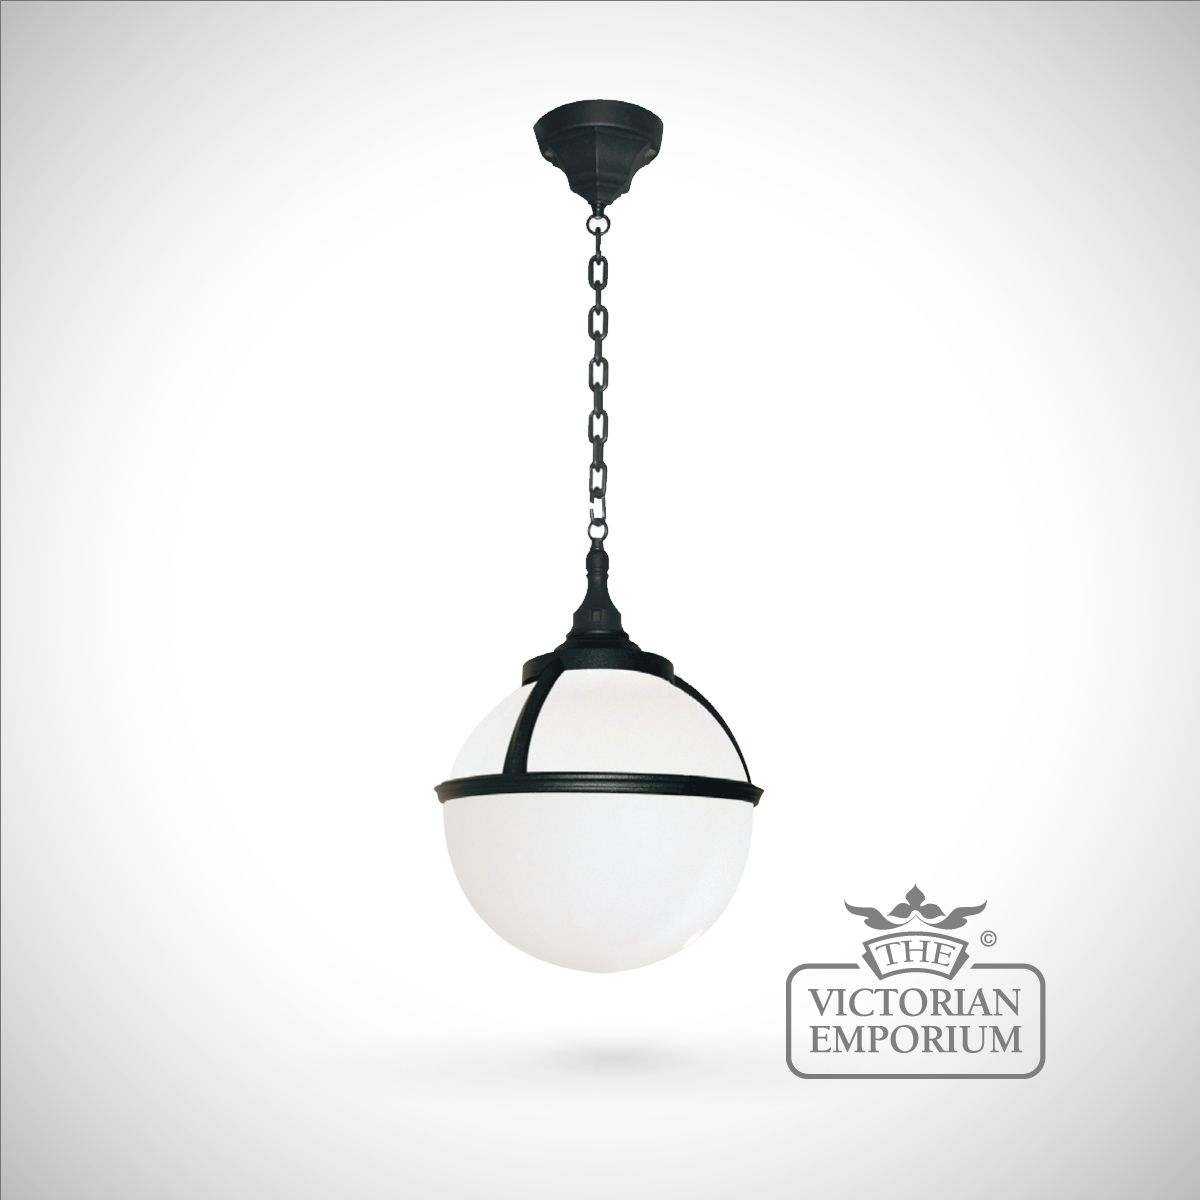 Buy Globe Chain Lantern, Exterior Ceiling Lights – Spherical Outdoor Intended For Outdoor Hanging Globe Lanterns (#3 of 15)